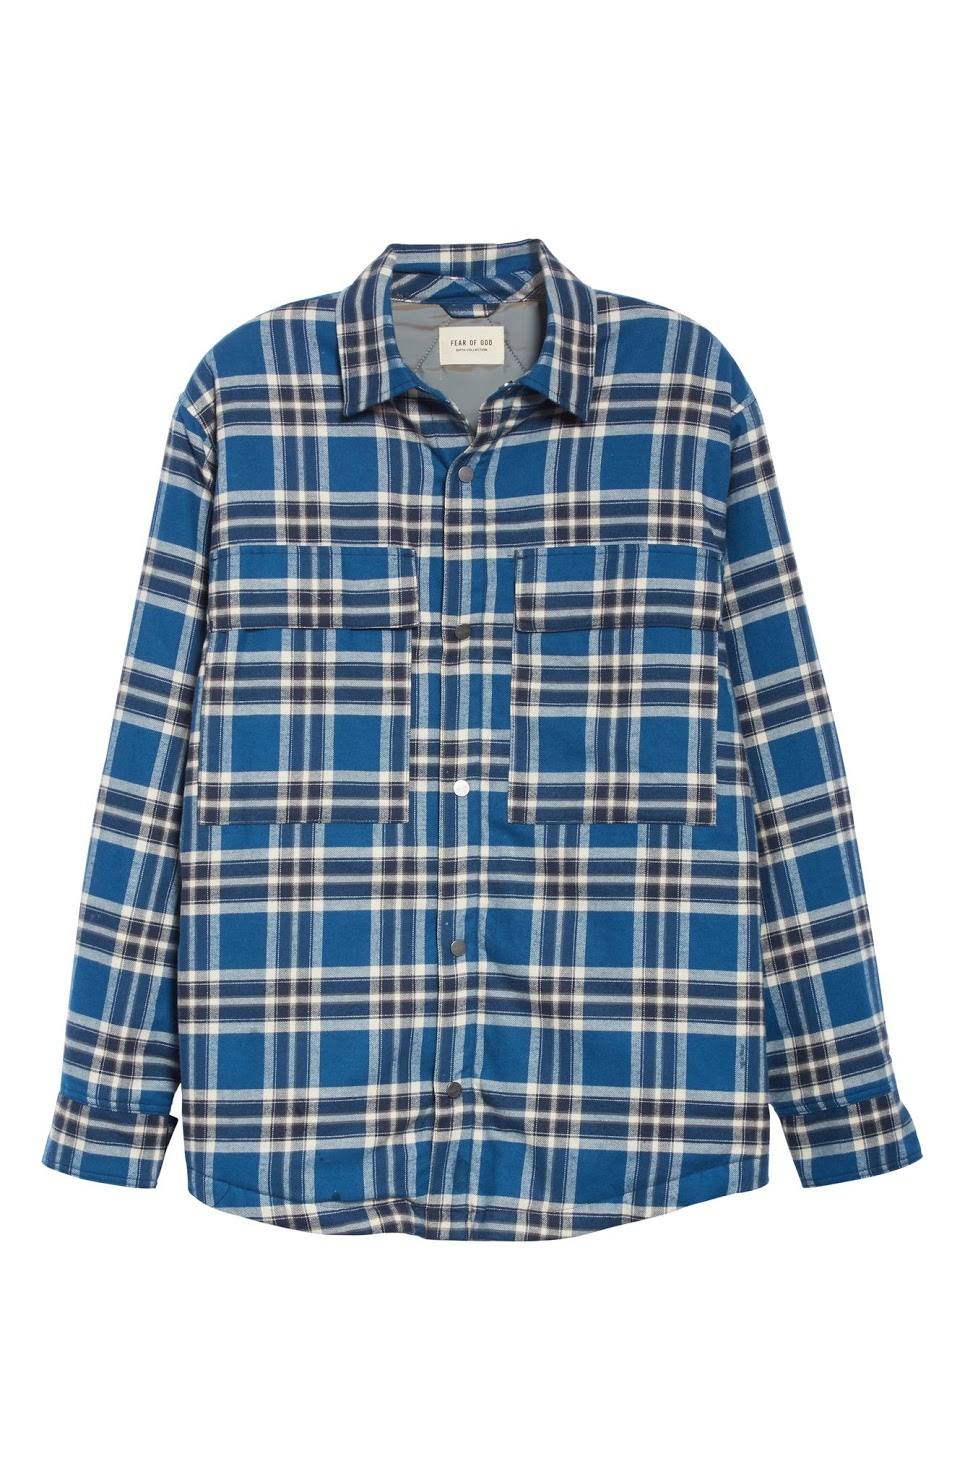 Fear of God_Plaid Shirt Jacket_$1295.jpeg